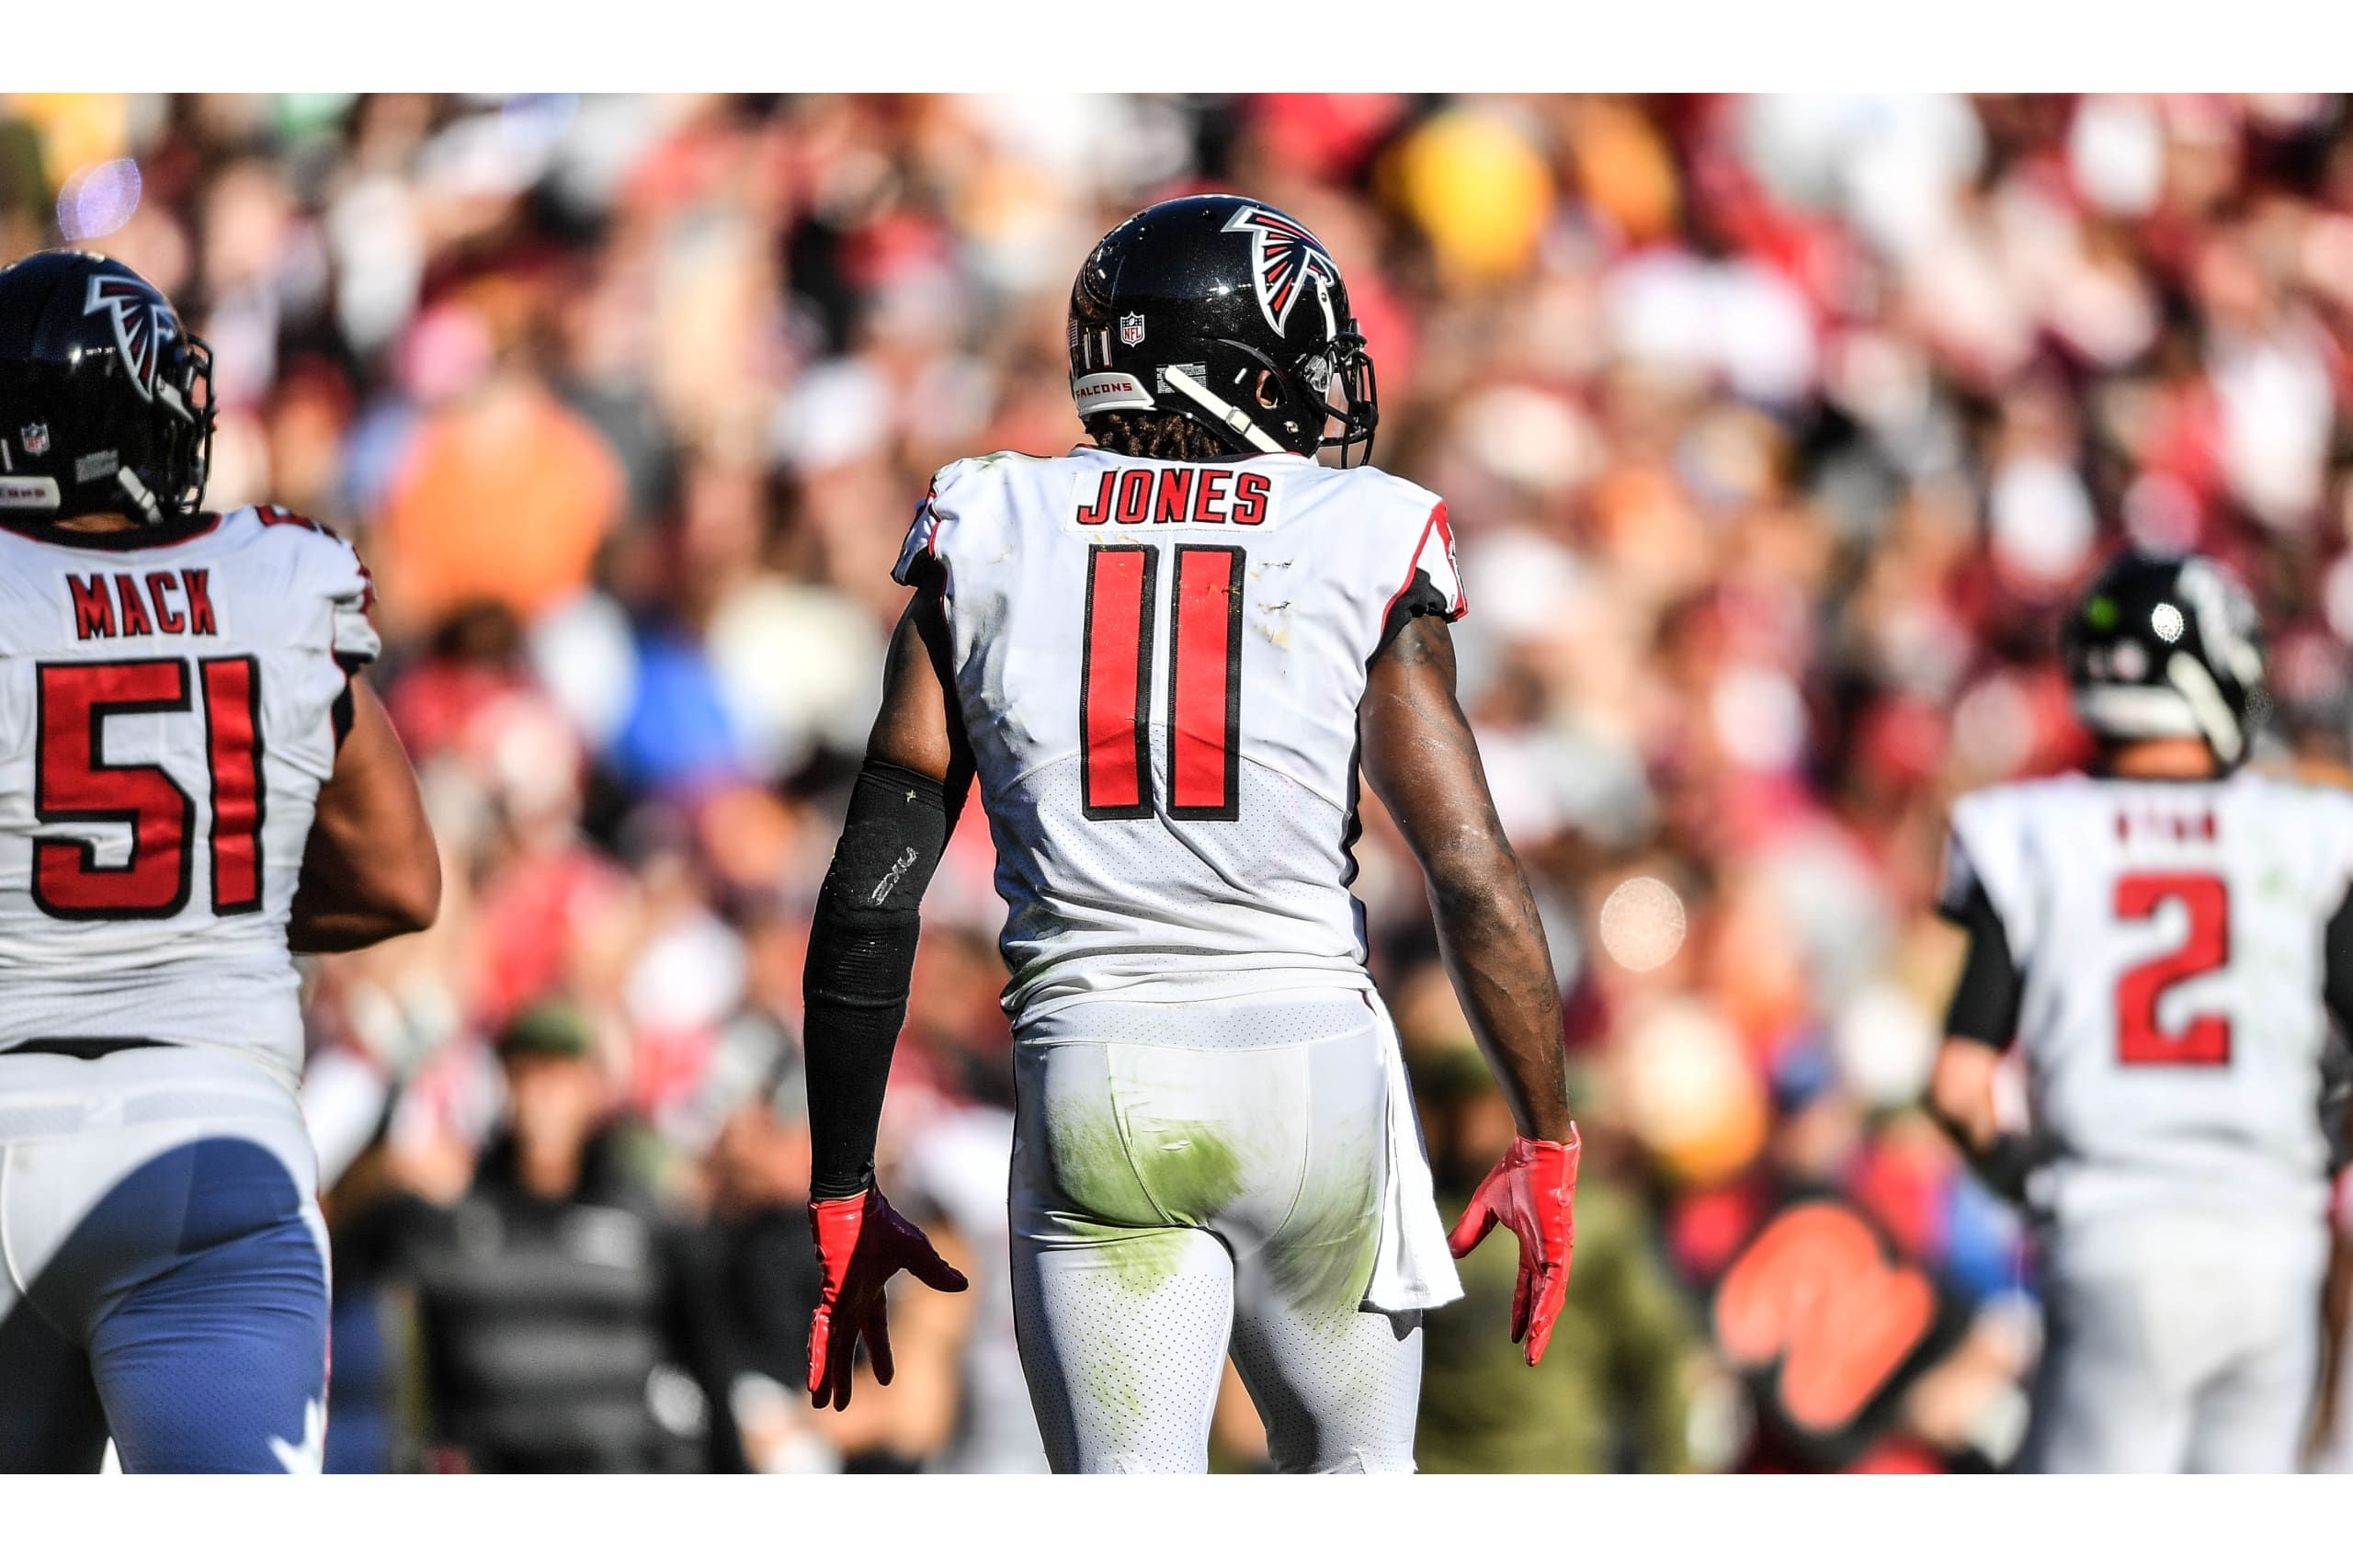 Wr Julio Jones Atlanta Falcons Alika Jenner Falcons Nfl Championships Atlanta Falcons